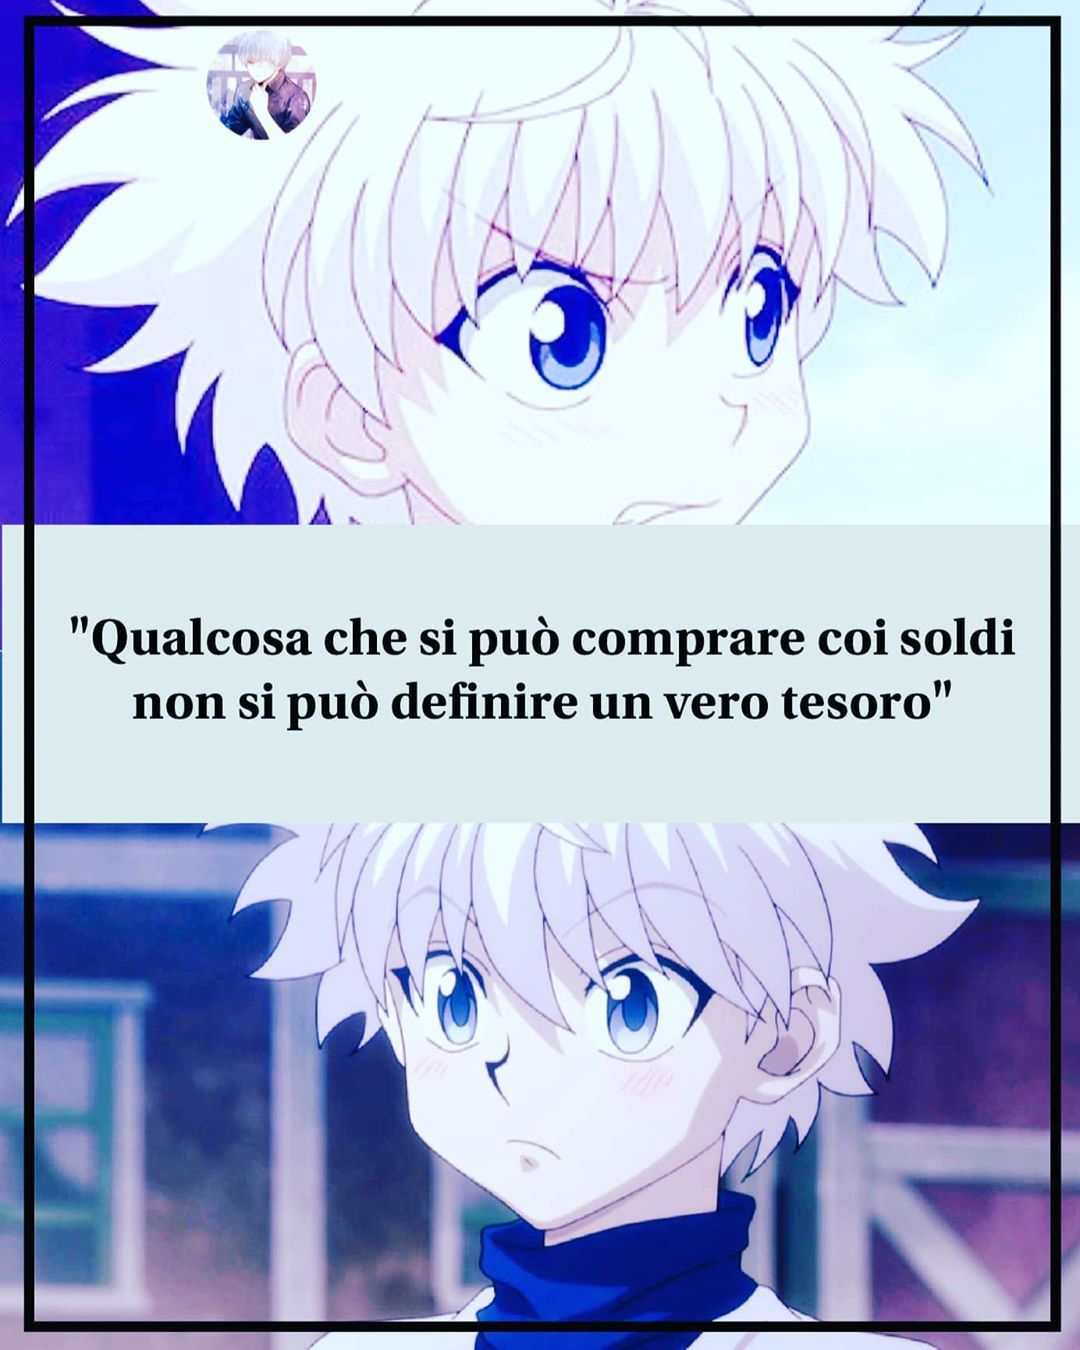 character Killua in 2020 Anime, Character, Manga